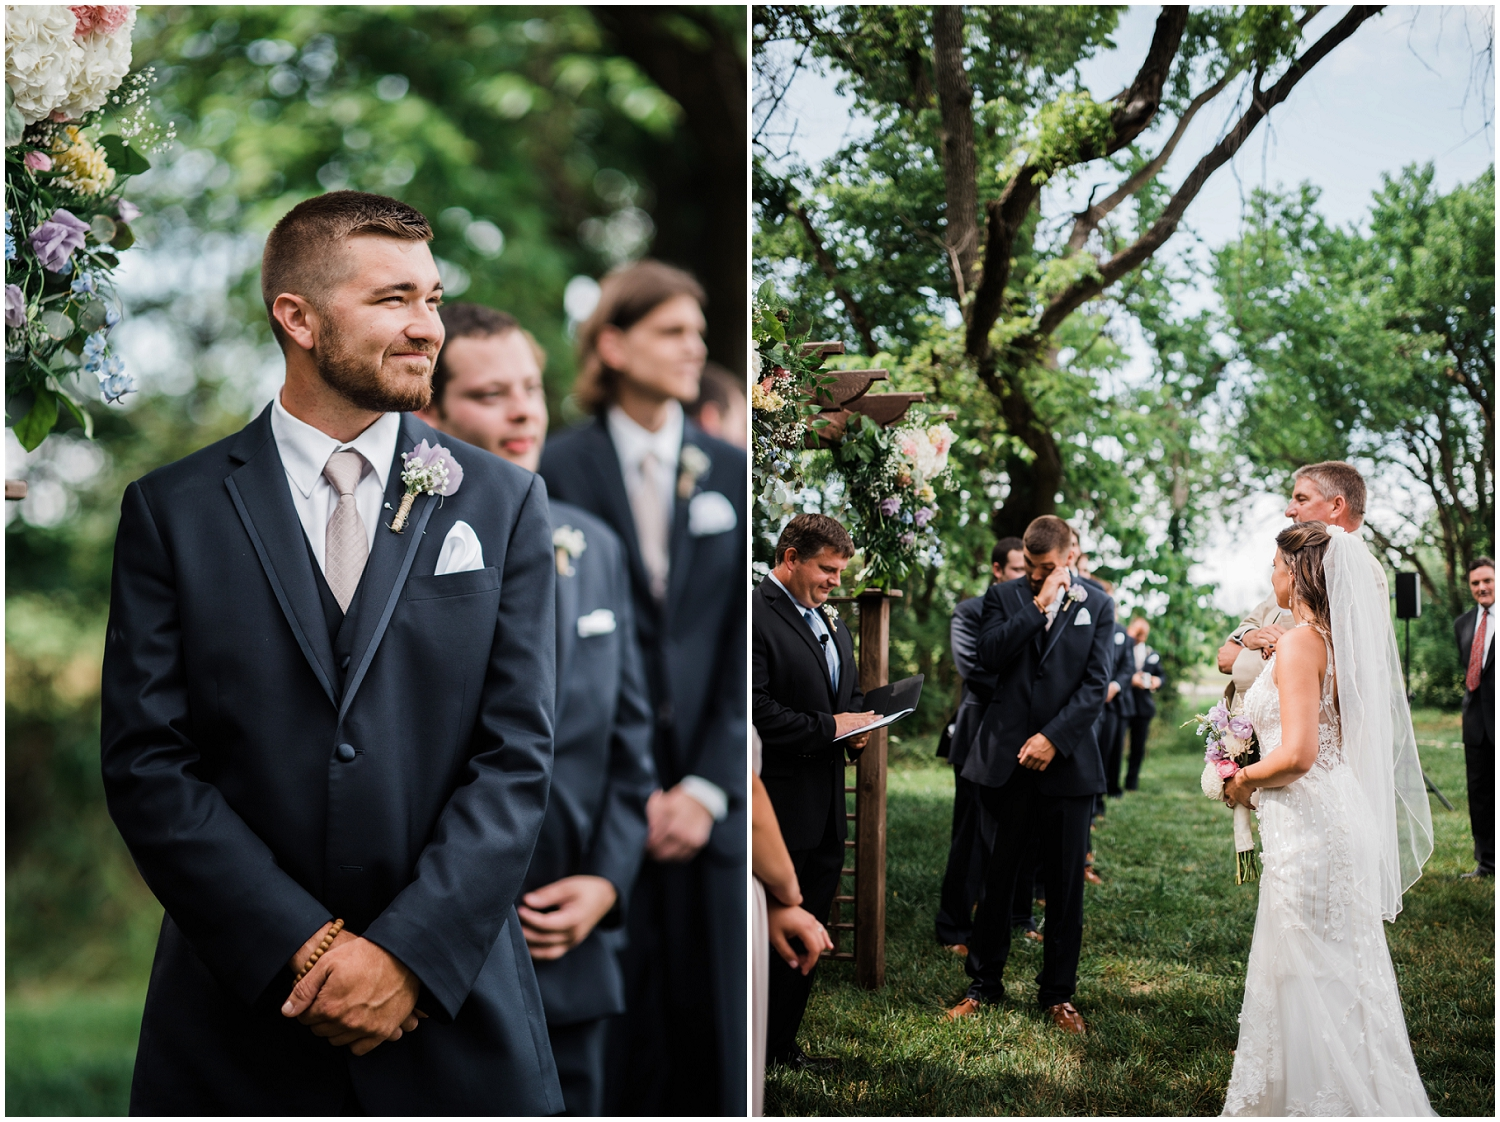 Groom's expression seeing bride for first time